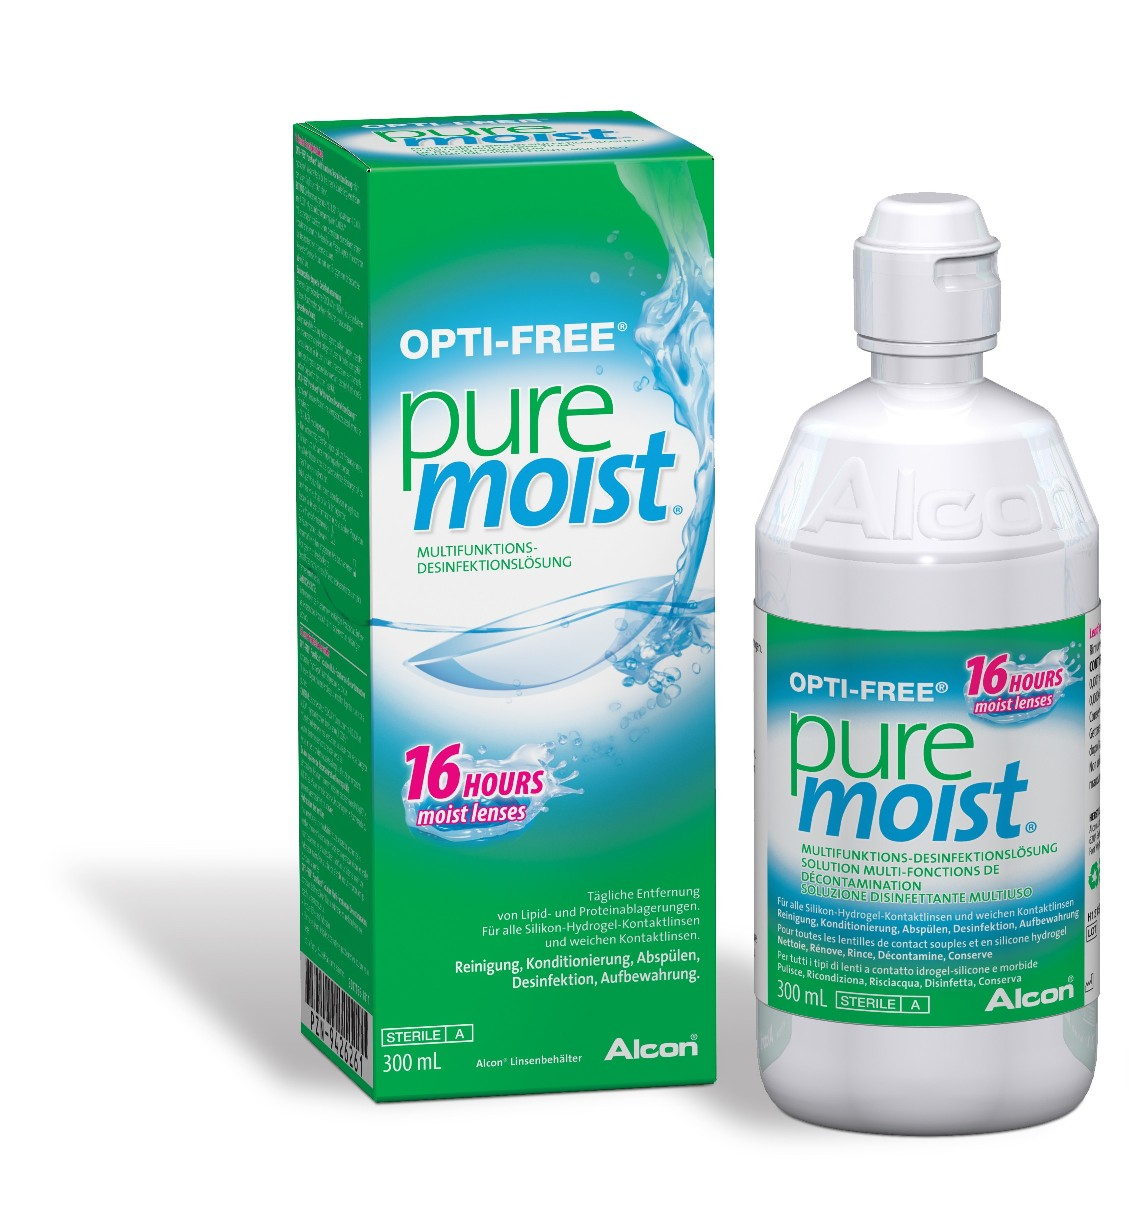 optifree.puremoist-1x300ml.